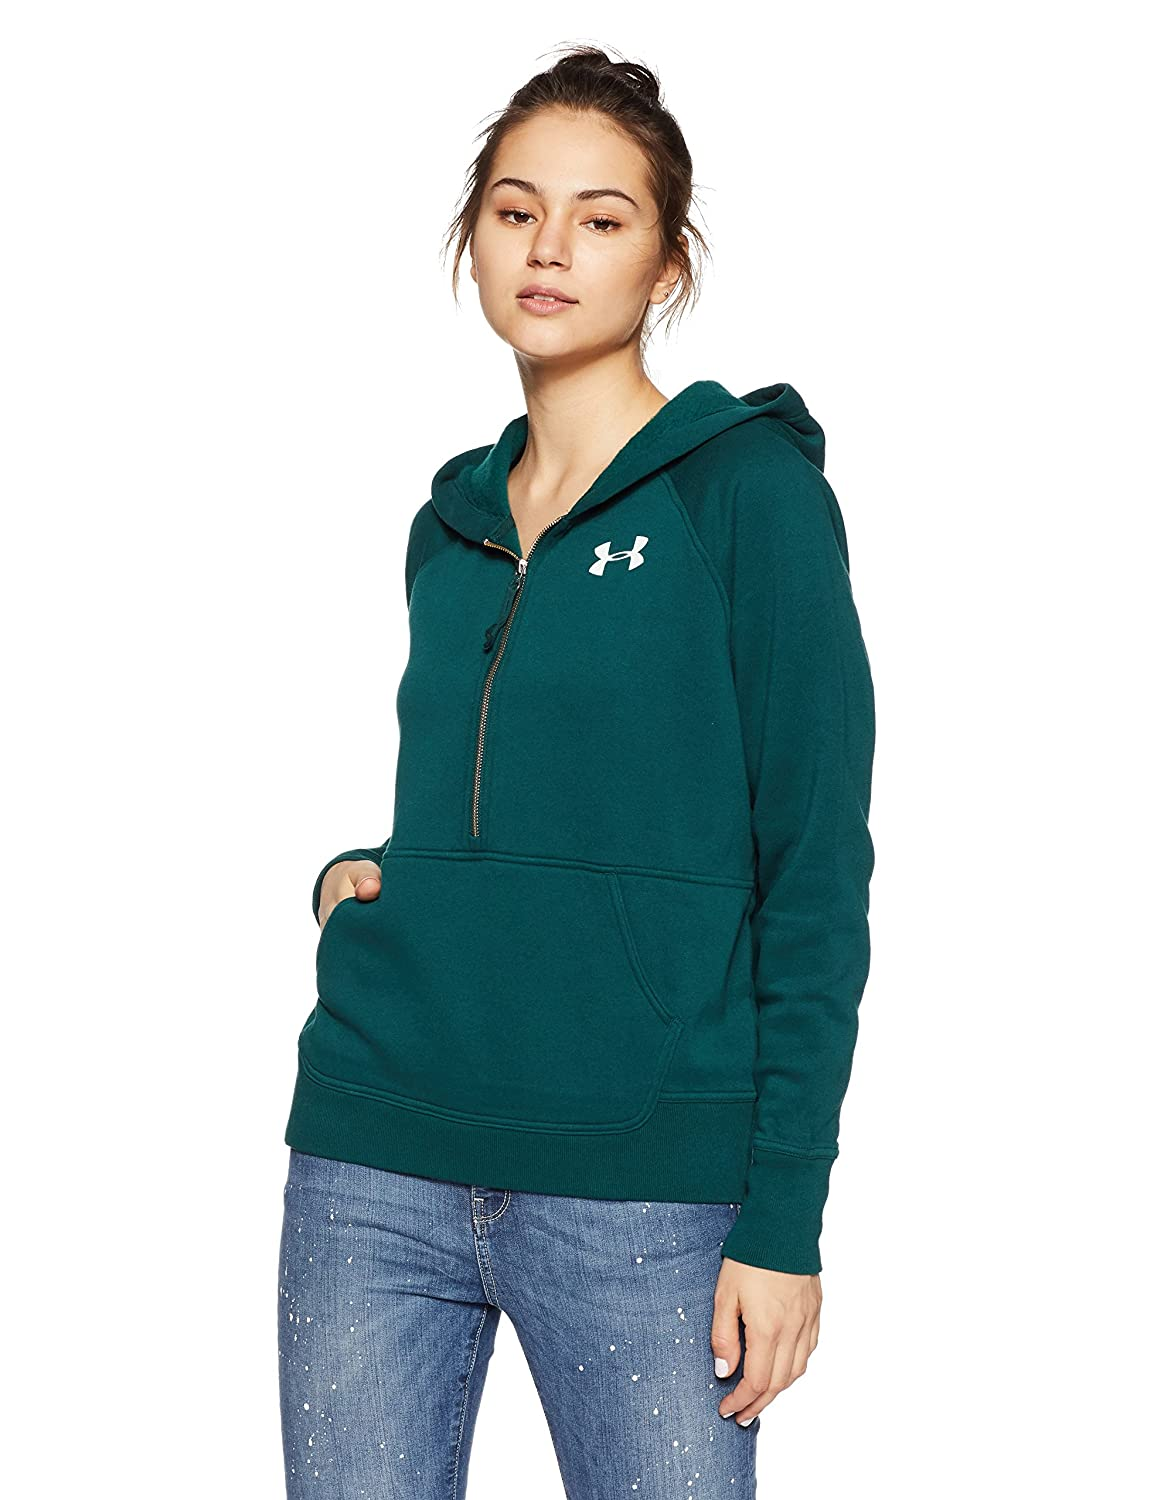 e0c6fcf8dd Amazon.com  Under Armour Womens Favorite Fleece 1 2 Zip  Sports   Outdoors